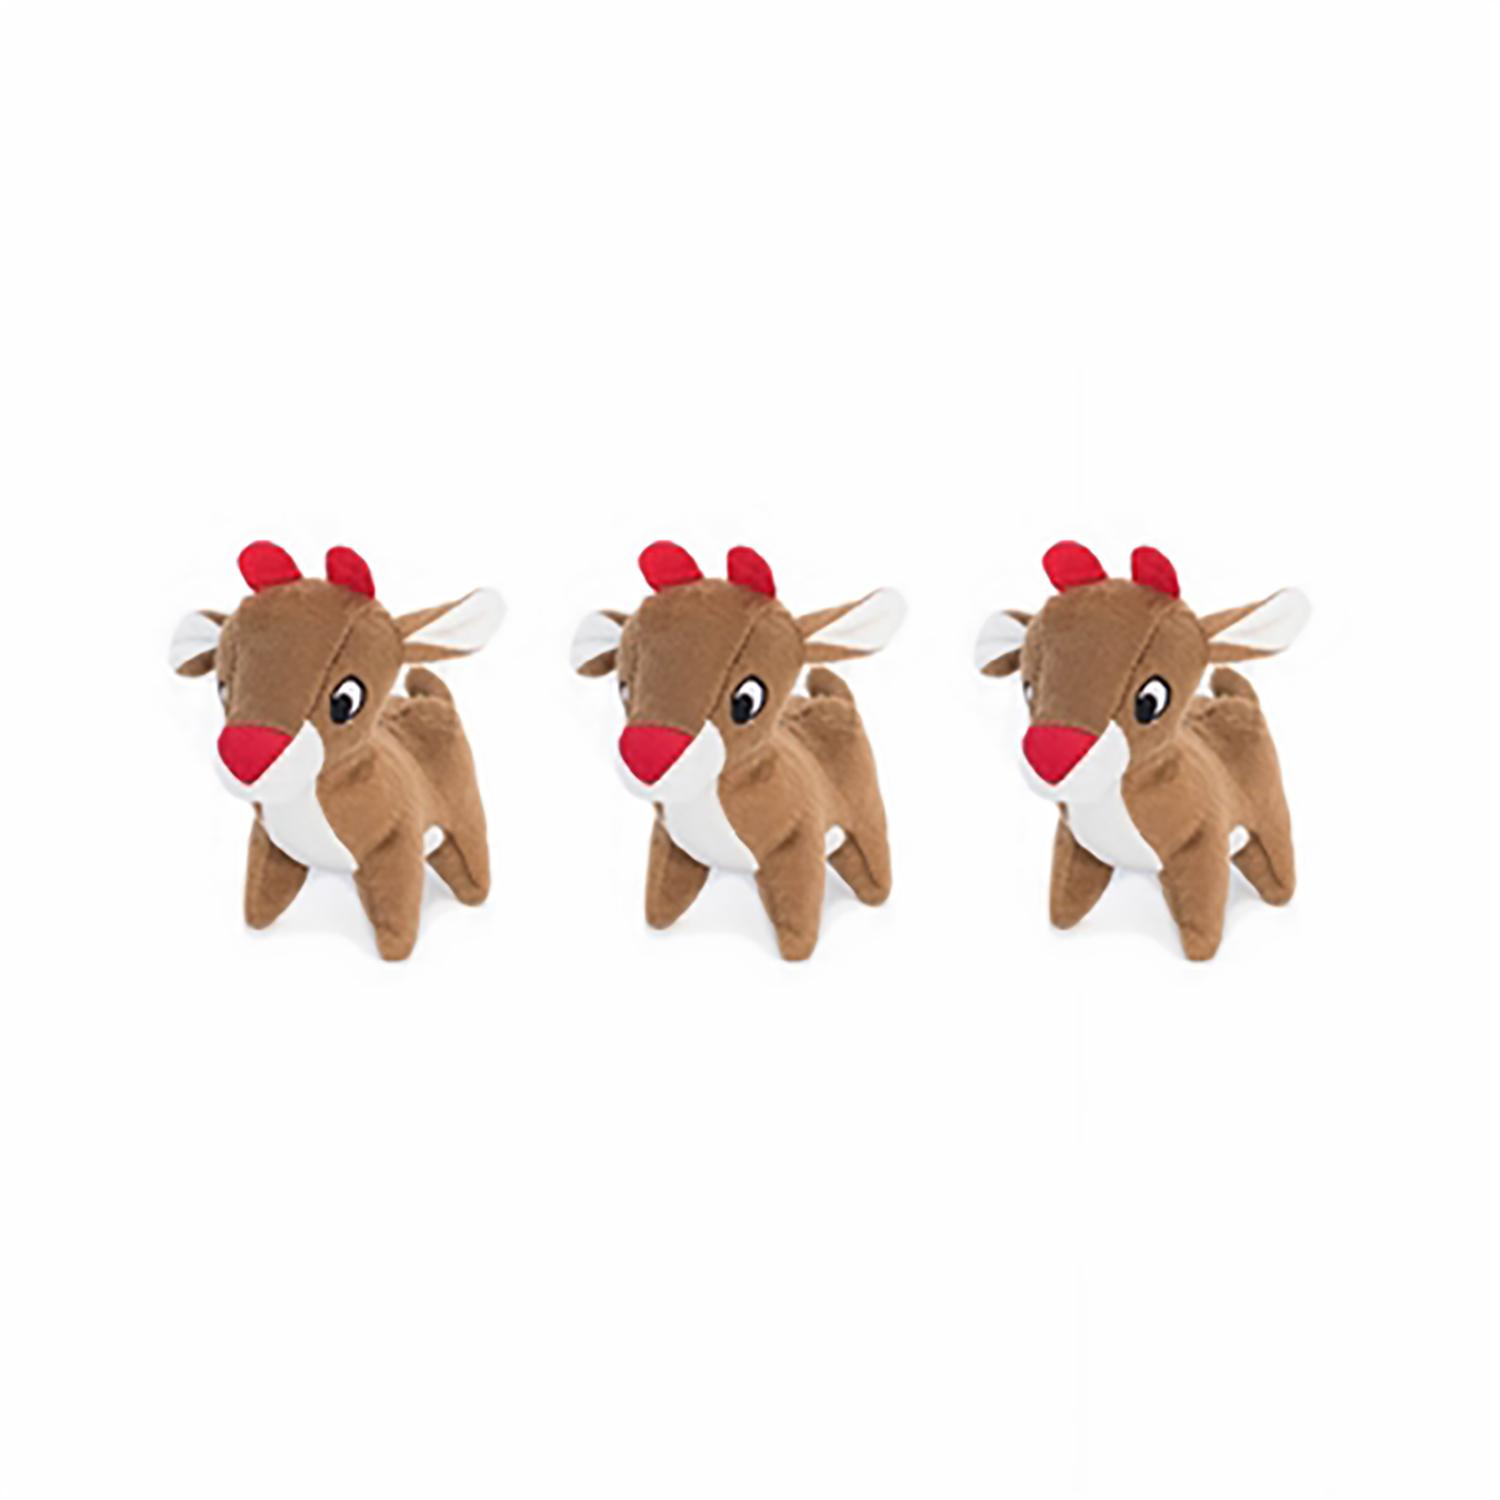 ZippyPaws Miniz Dog Toys - Reindeer